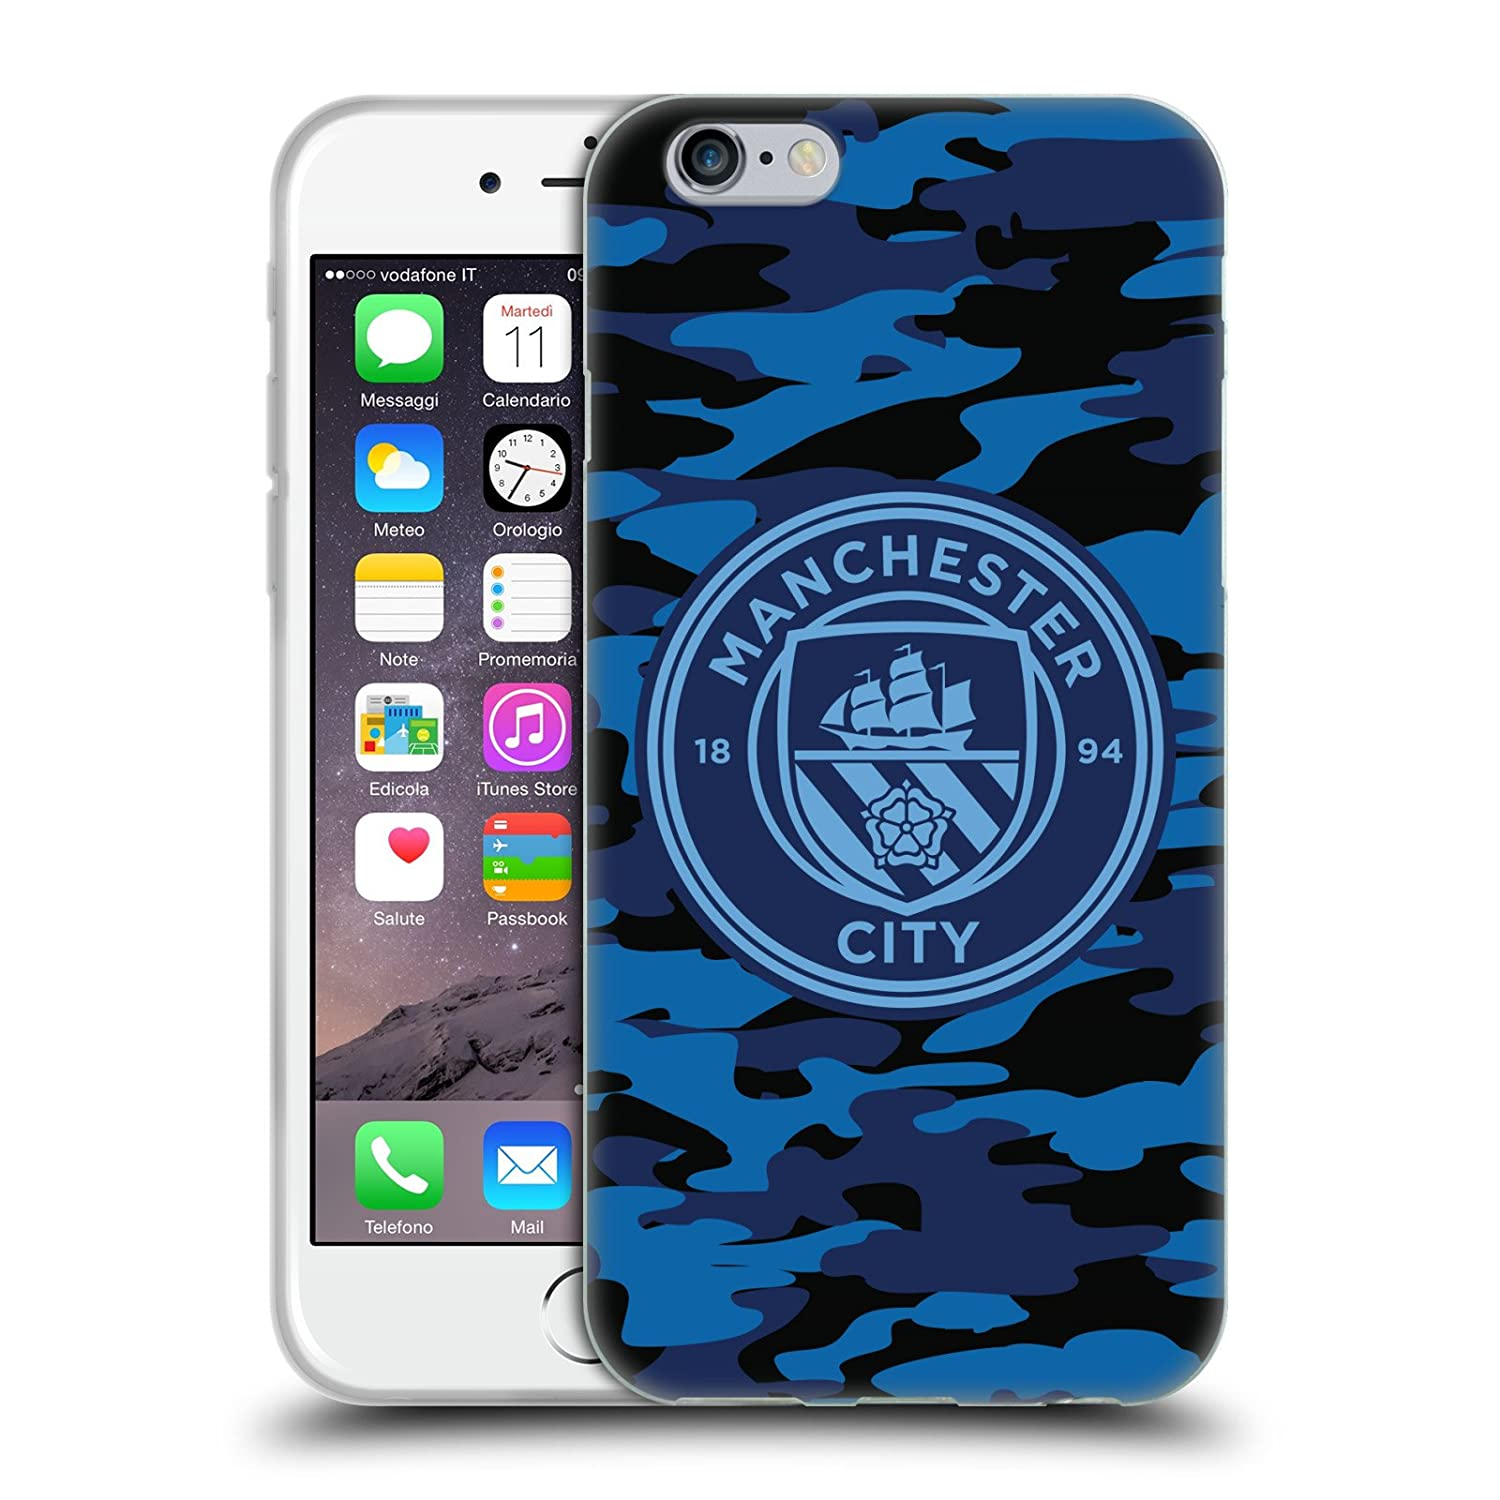 Calendario Ual.Official Manchester City Man City Fc Dark Blue Moon Mono Badge Camou Soft Gel Case For Iphone 6 Iphone 6s